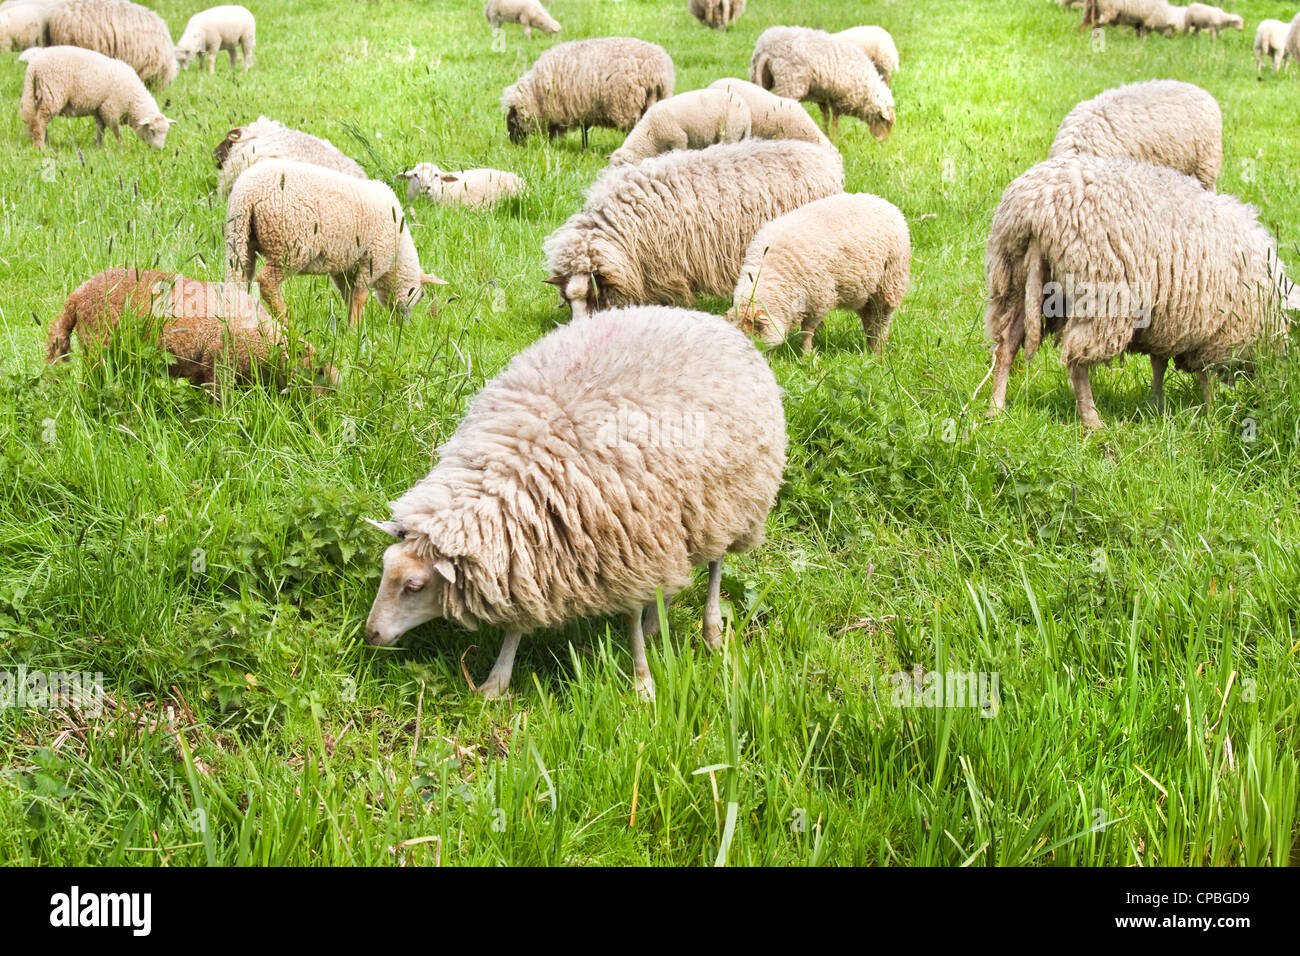 Flock of sheep grazing on sunny day in spring - Stock Image